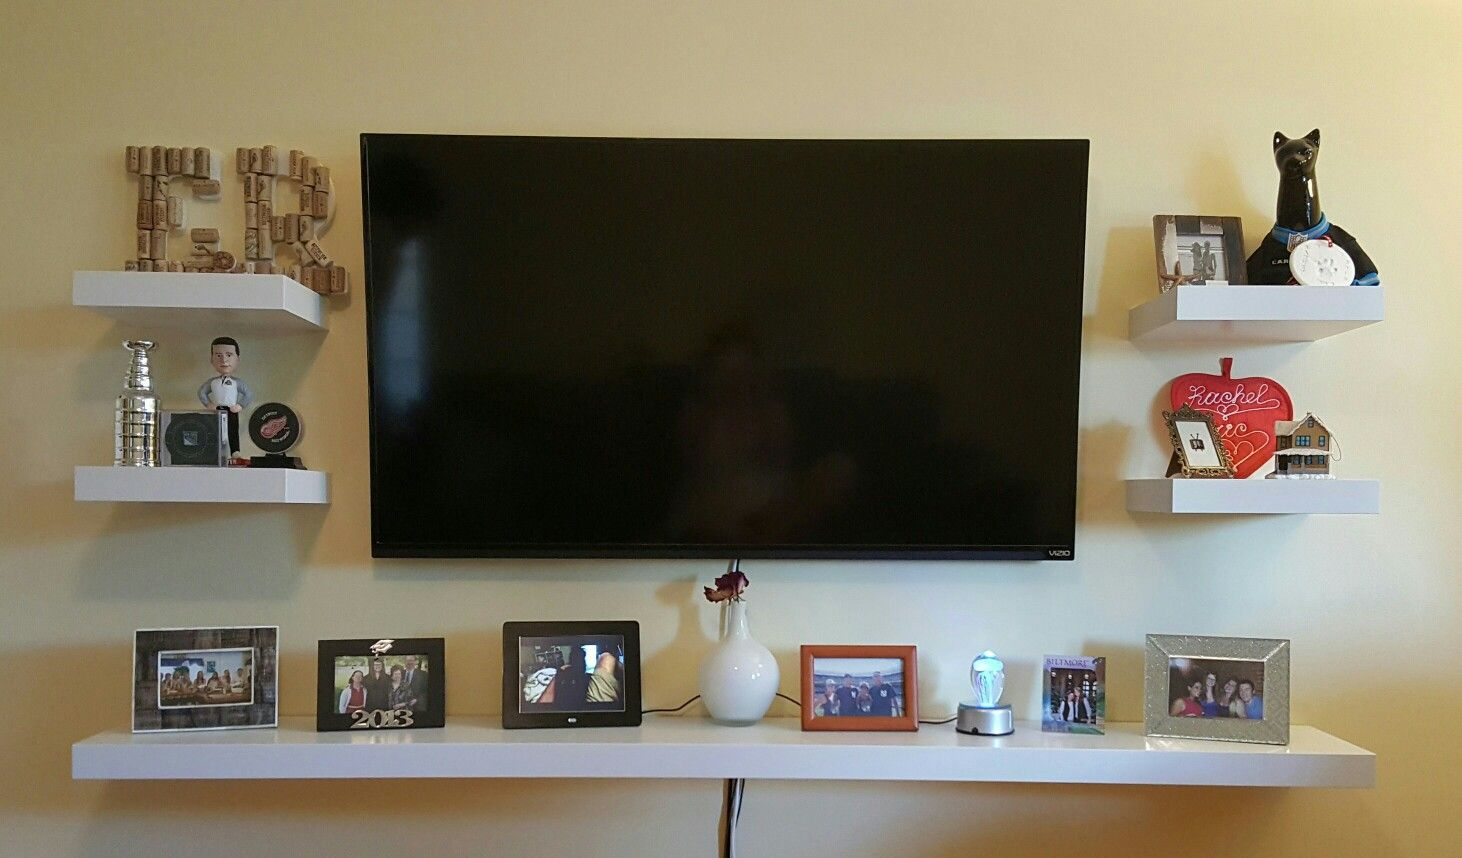 18 chic and modern tv wall mount ideas for living room How high to mount tv on wall in living room